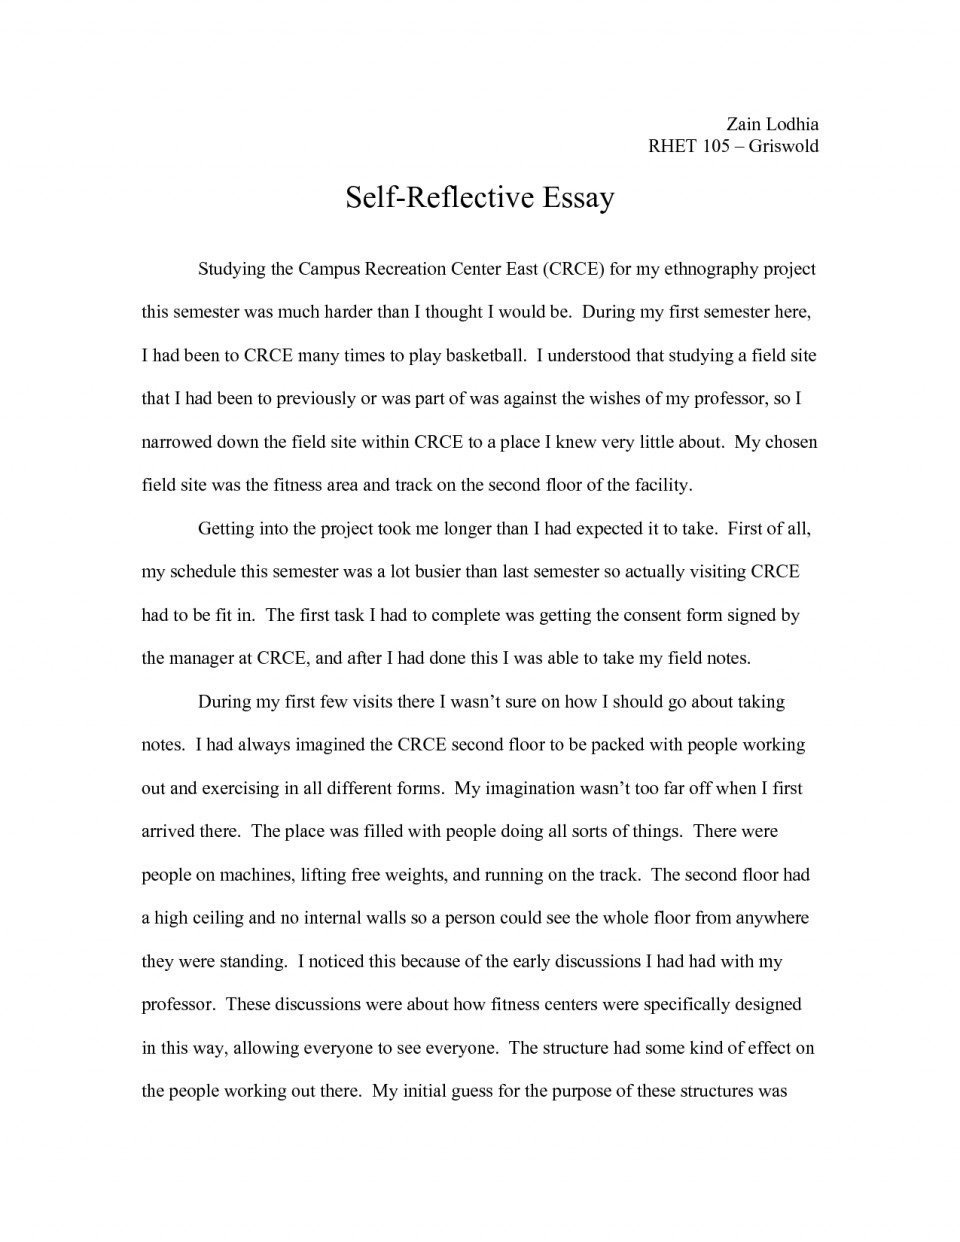 003 Qal0pwnf46 Reflective Essays Beautiful Essay Examples English Pdf For Middle School On Writing Class 960